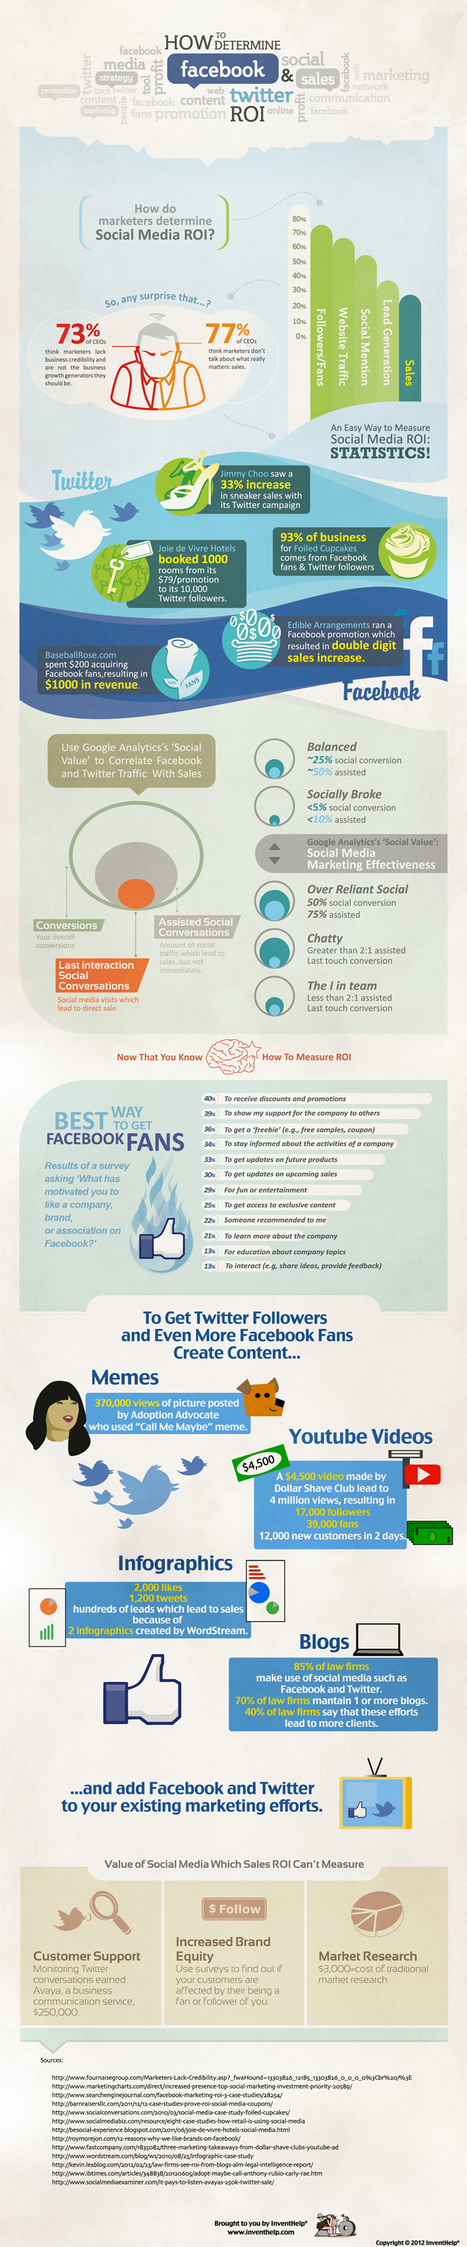 How To Determine Facebook And Twitter ROI + #Infographic | En Tongs : le Mag des Media Sociaux | Scoop.it